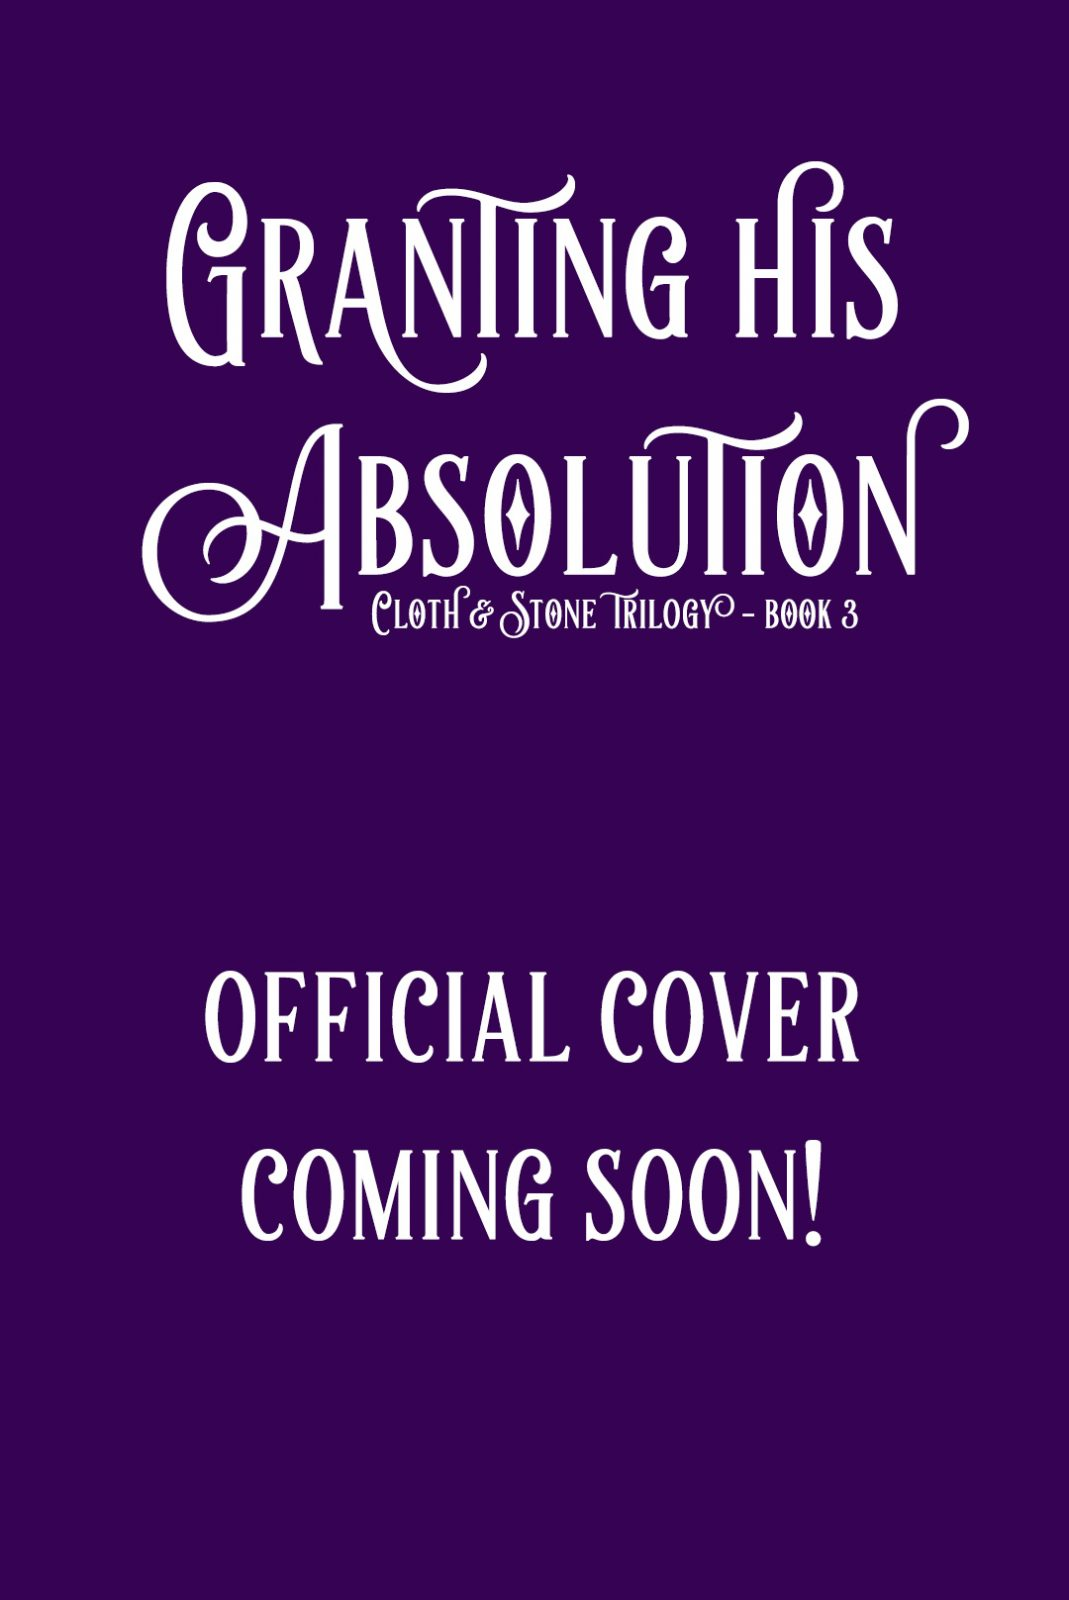 Granting His Absolution